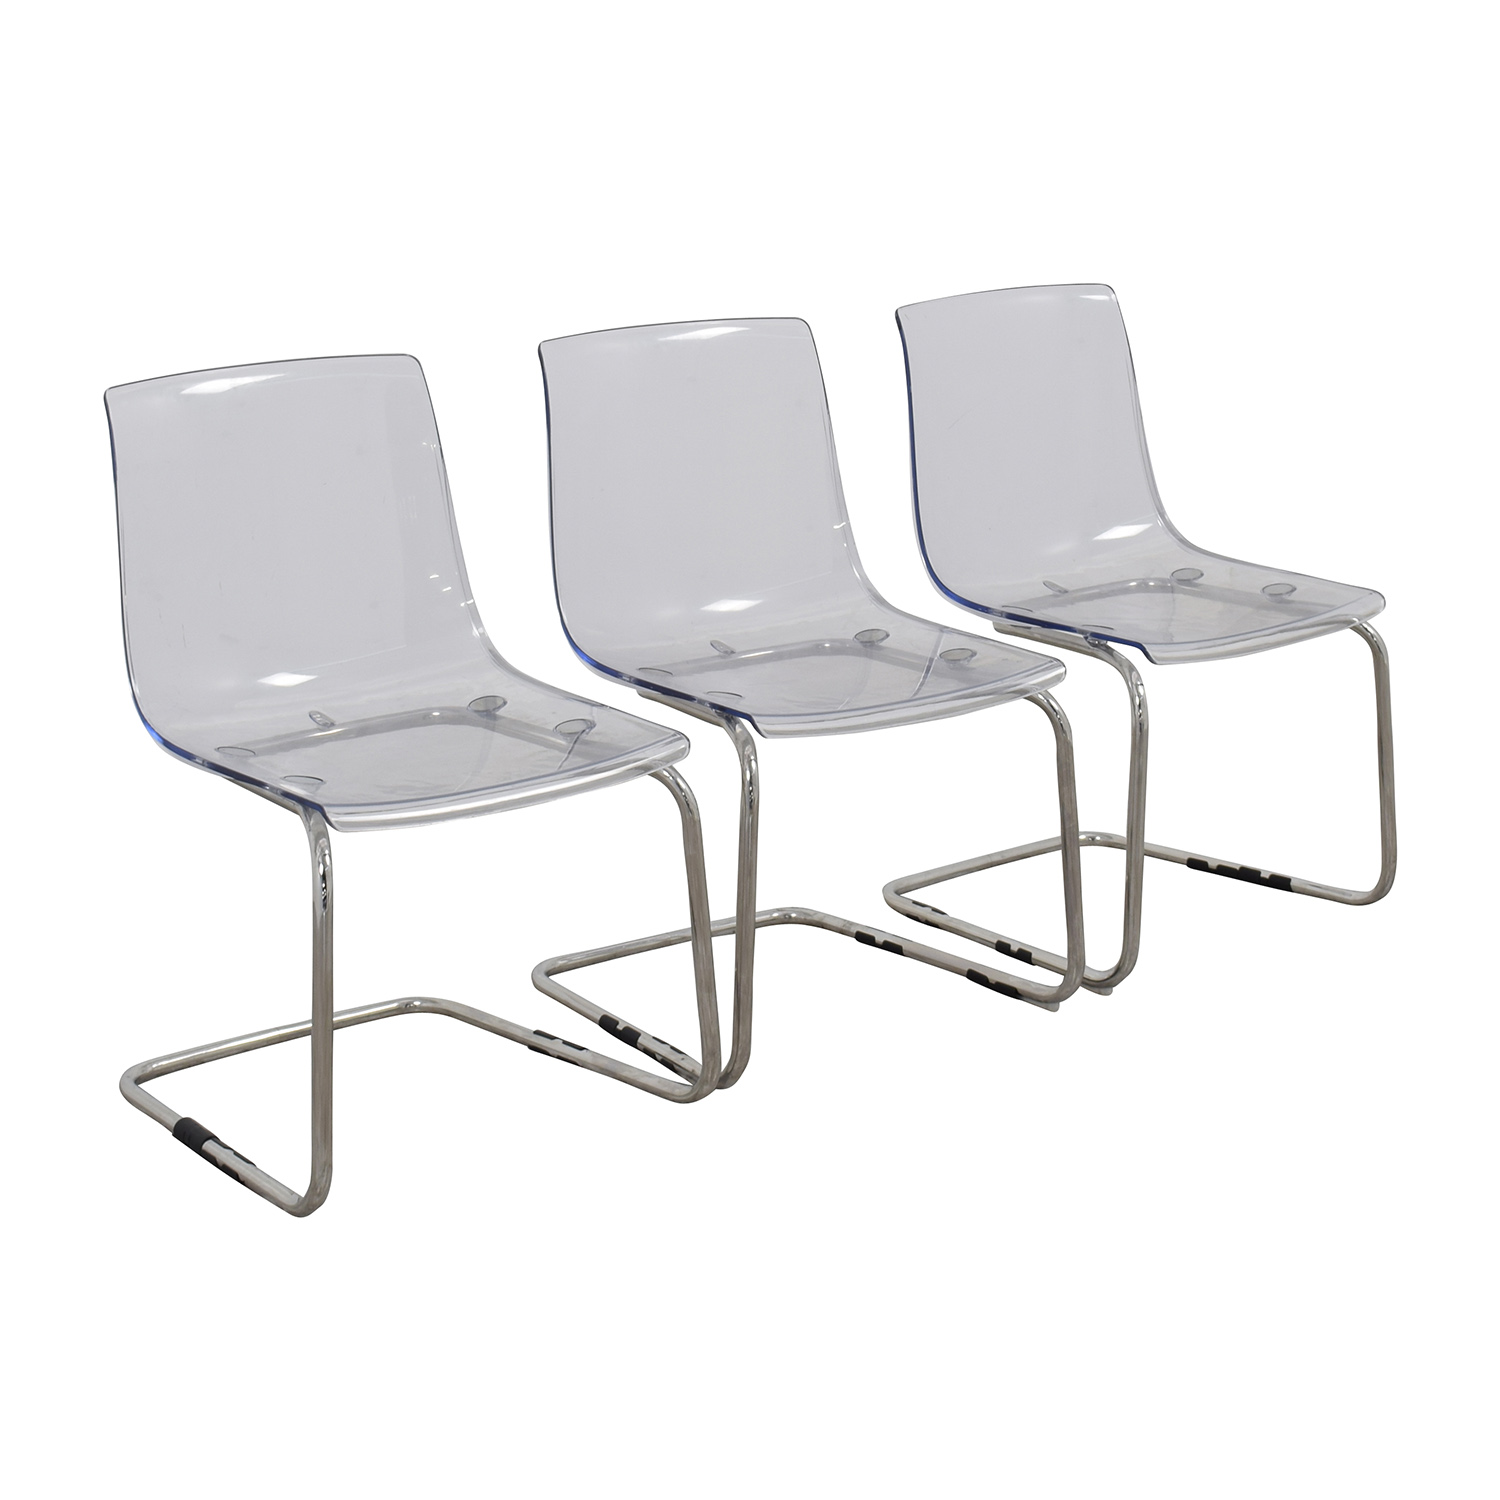 66% OFF Modern Acrylic Chairs Chairs